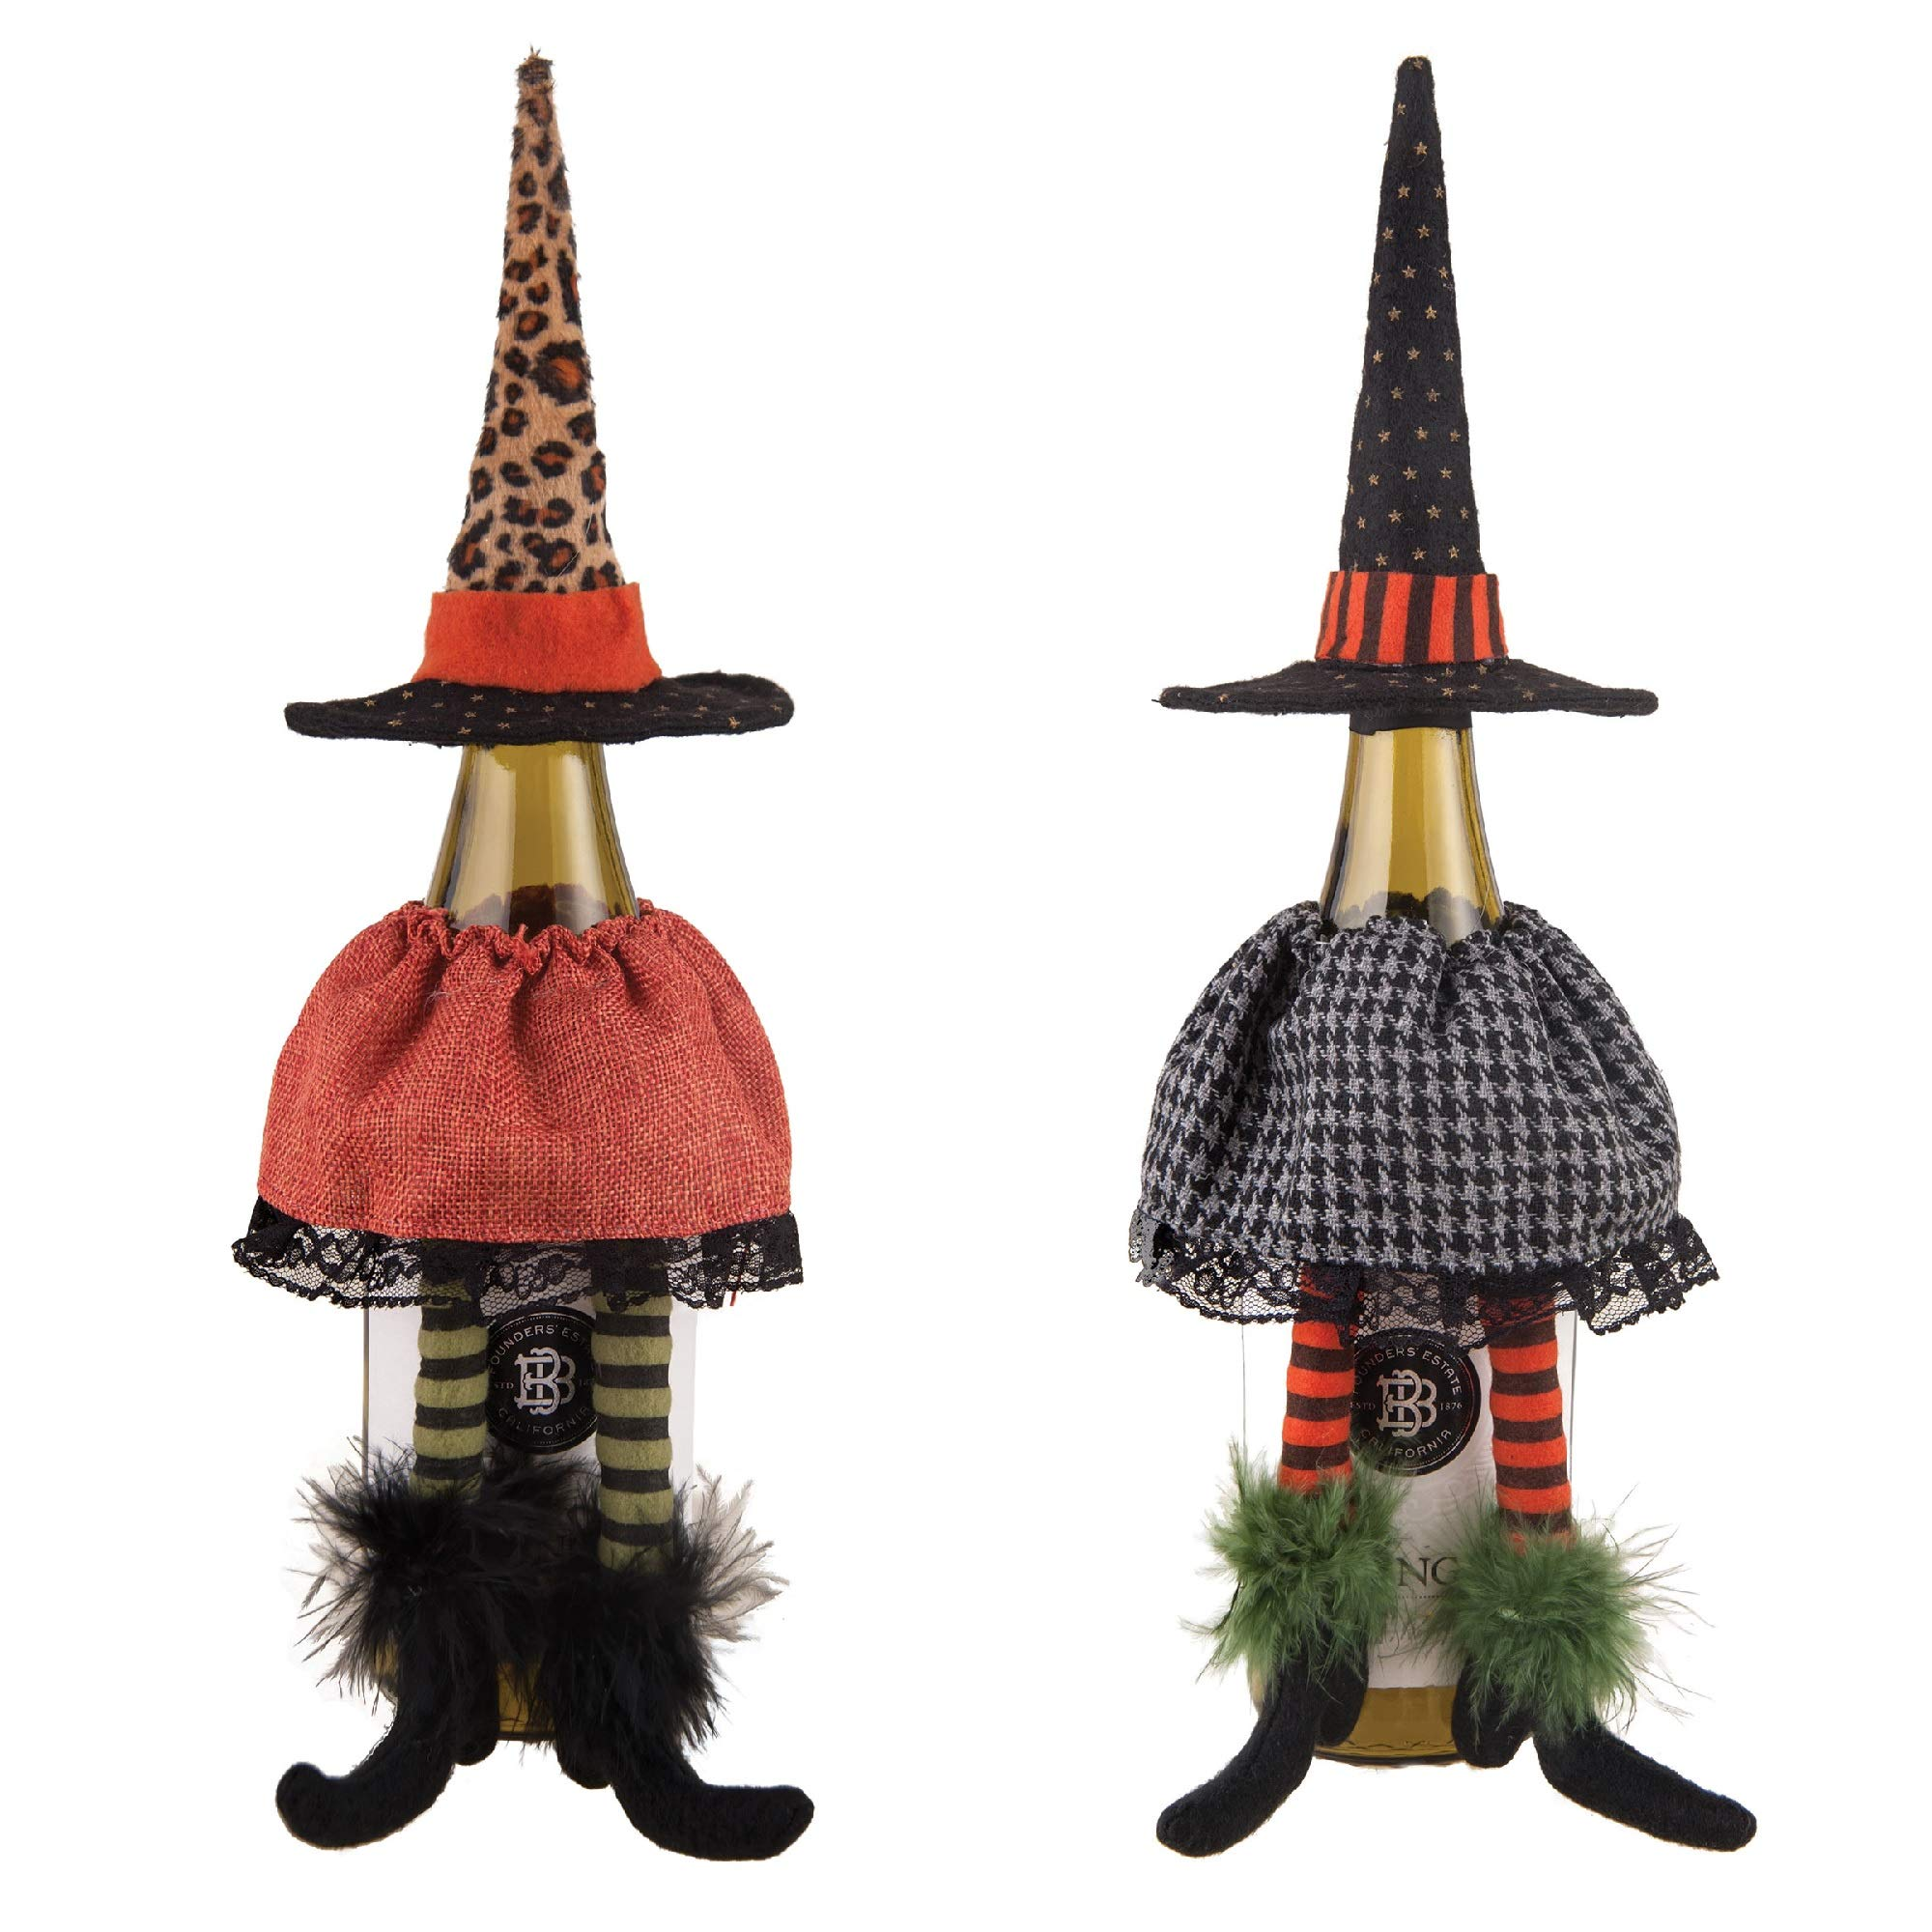 GALLERIE II Set of 2 Witchy Bottle Toppers 14'' by GALLERIE II